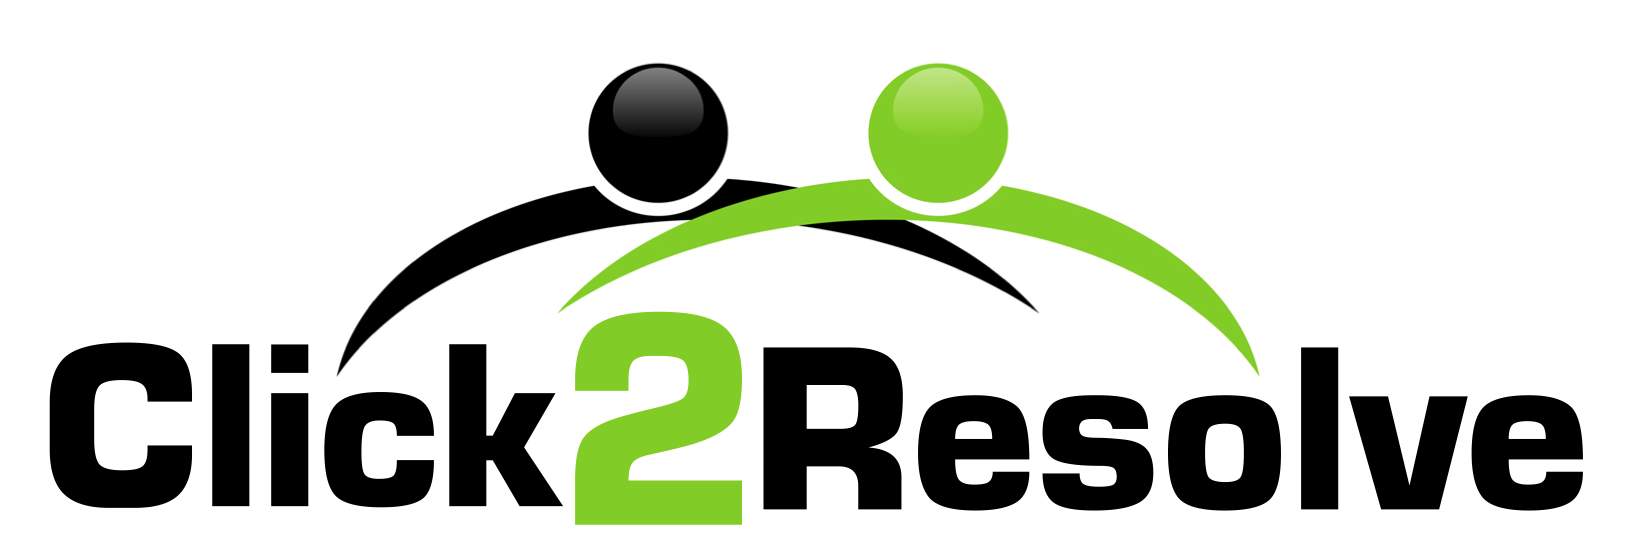 Alternative Disputes Resolution (adr) Is No Longer An Option For Businesses.